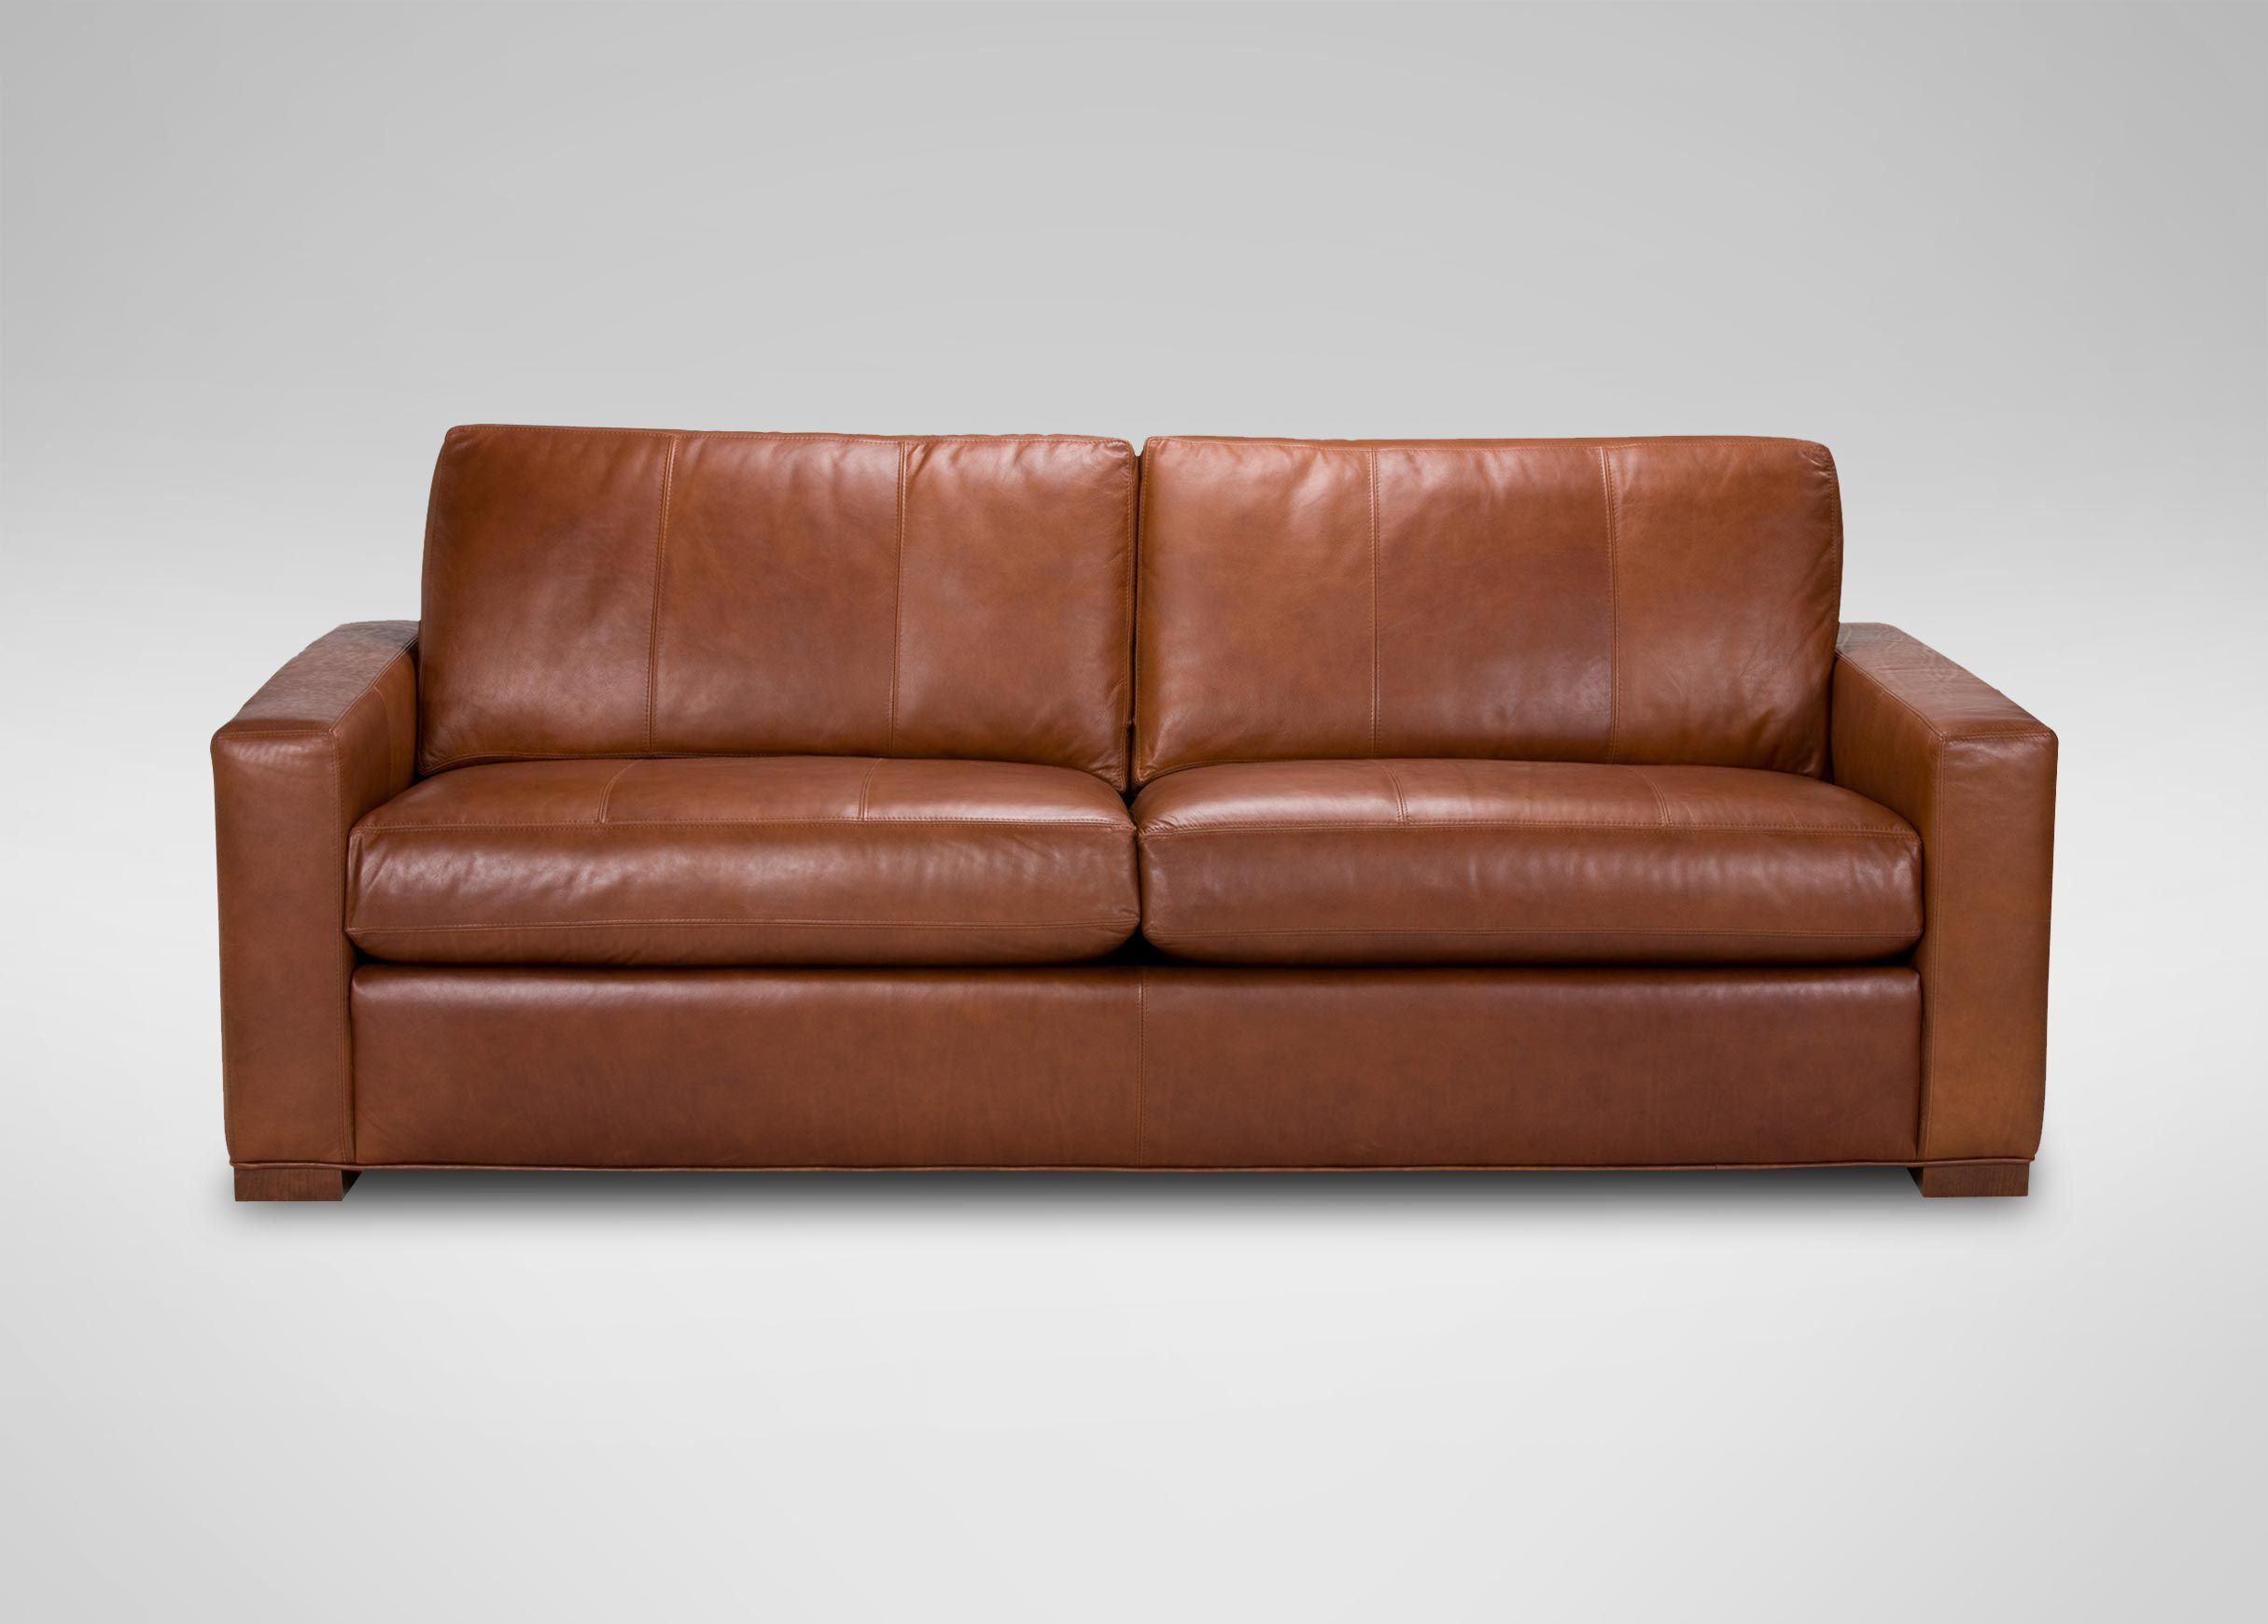 Hudson Leather Sofas And Loveseat Ethan Allen Favorite